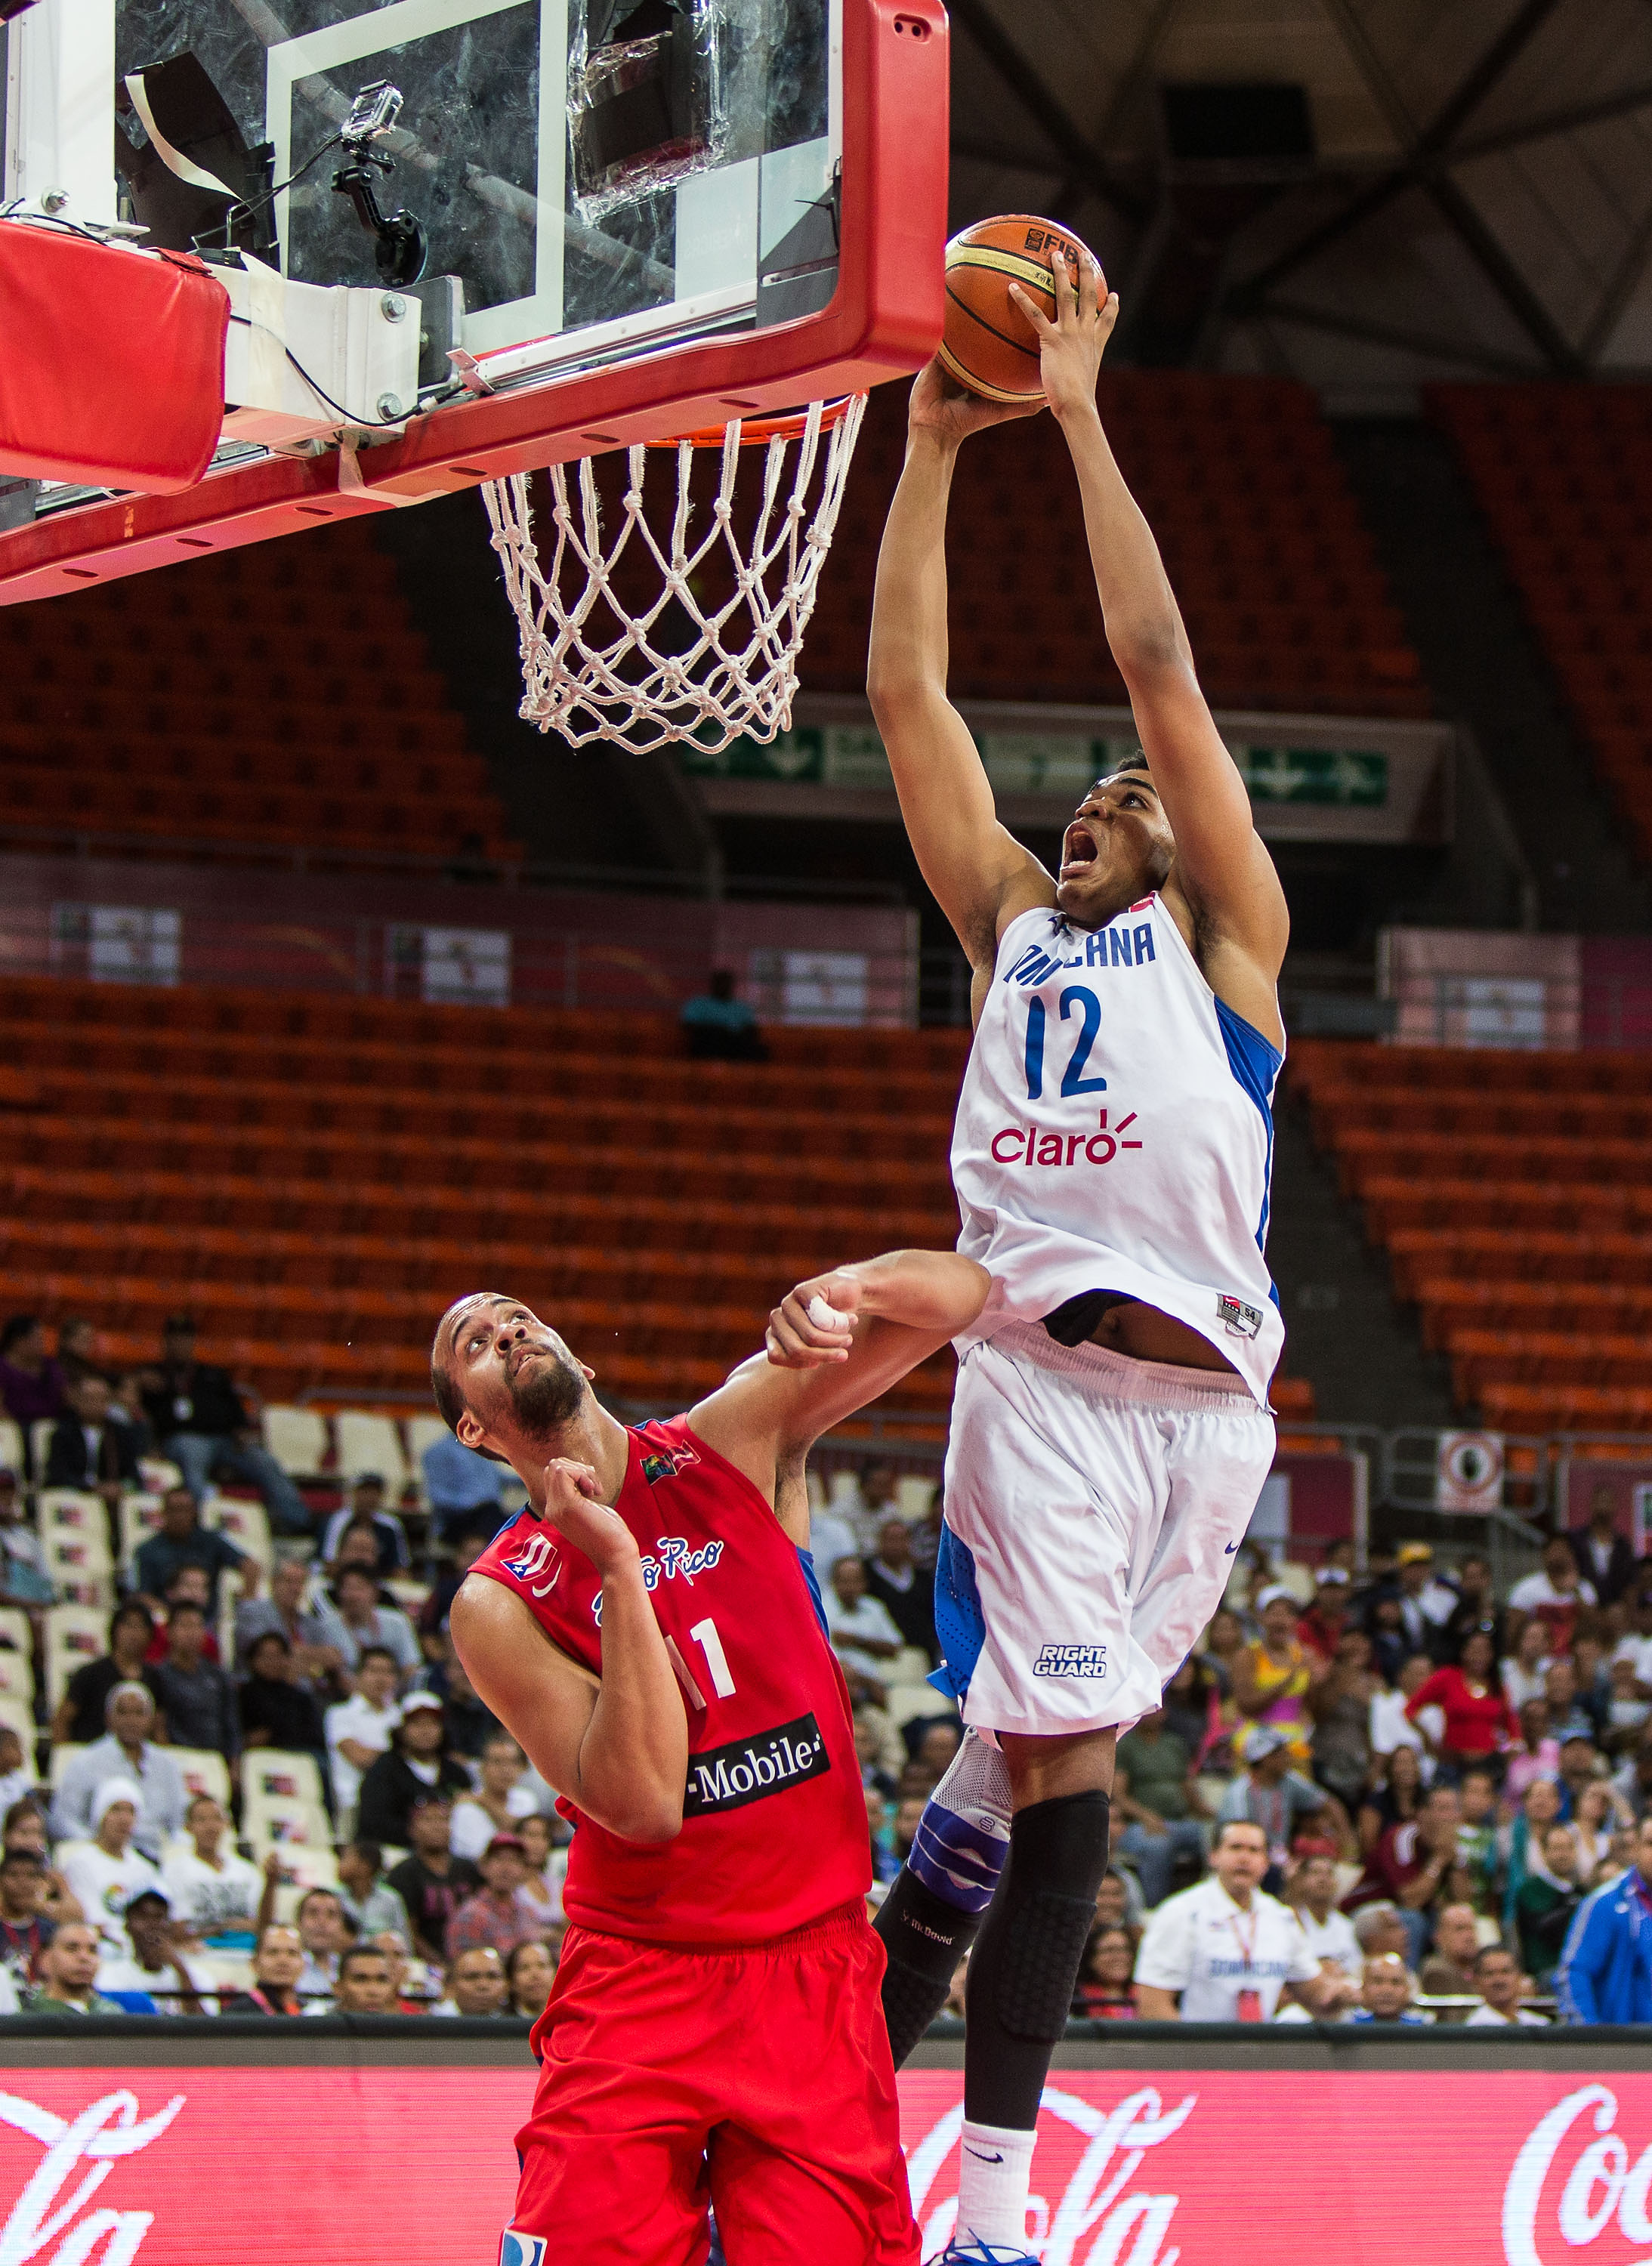 The 7-foot-1 17-year-old Karl Towns of the Dominican Republic elevates over Puerto Rico's defense during the rivalry game.